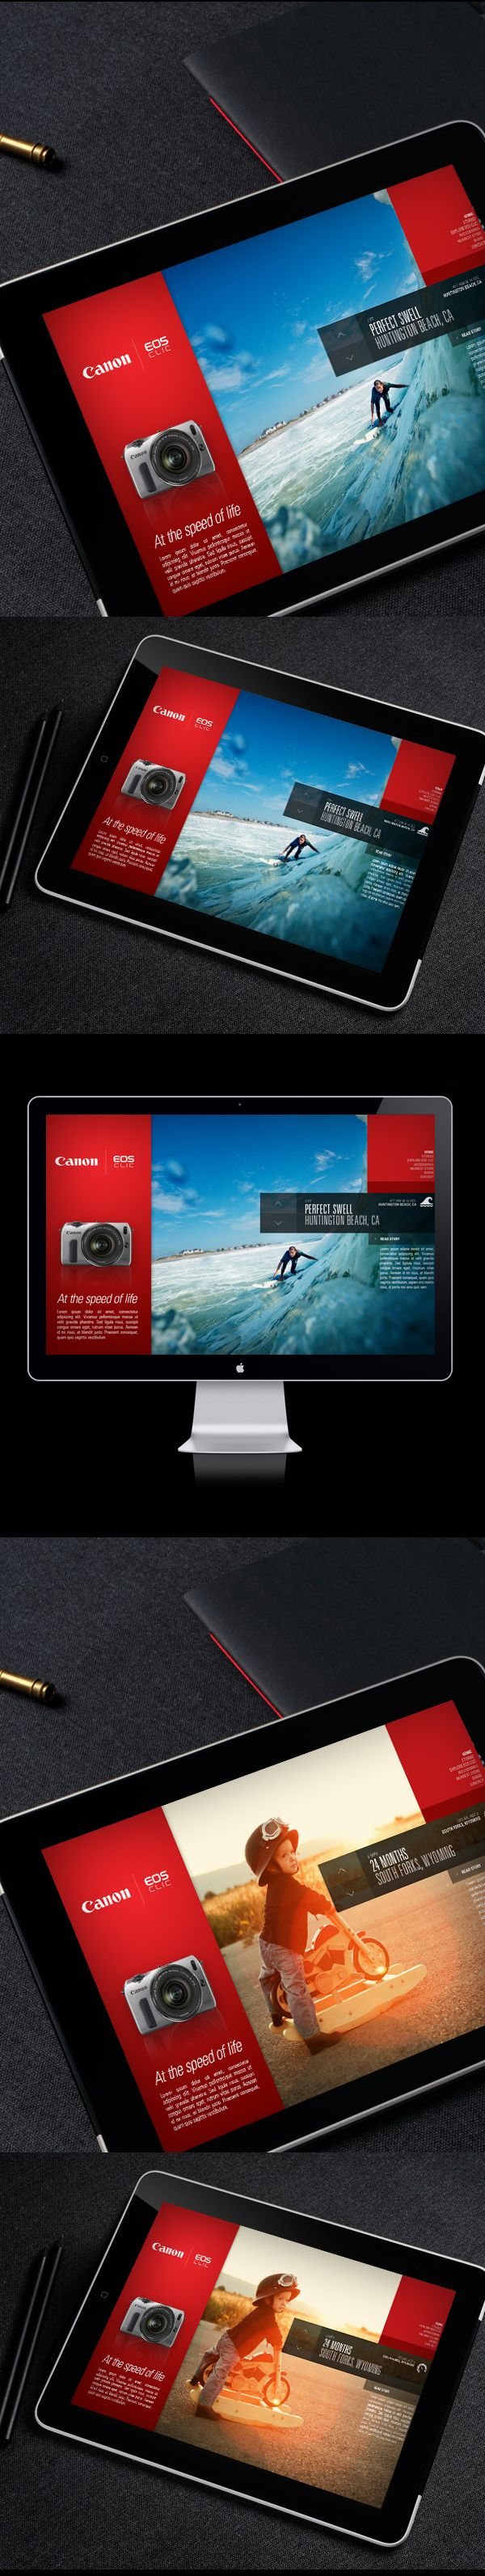 Canon EOS-M / Campaign Microsite by Thomas Moeller, via Behance